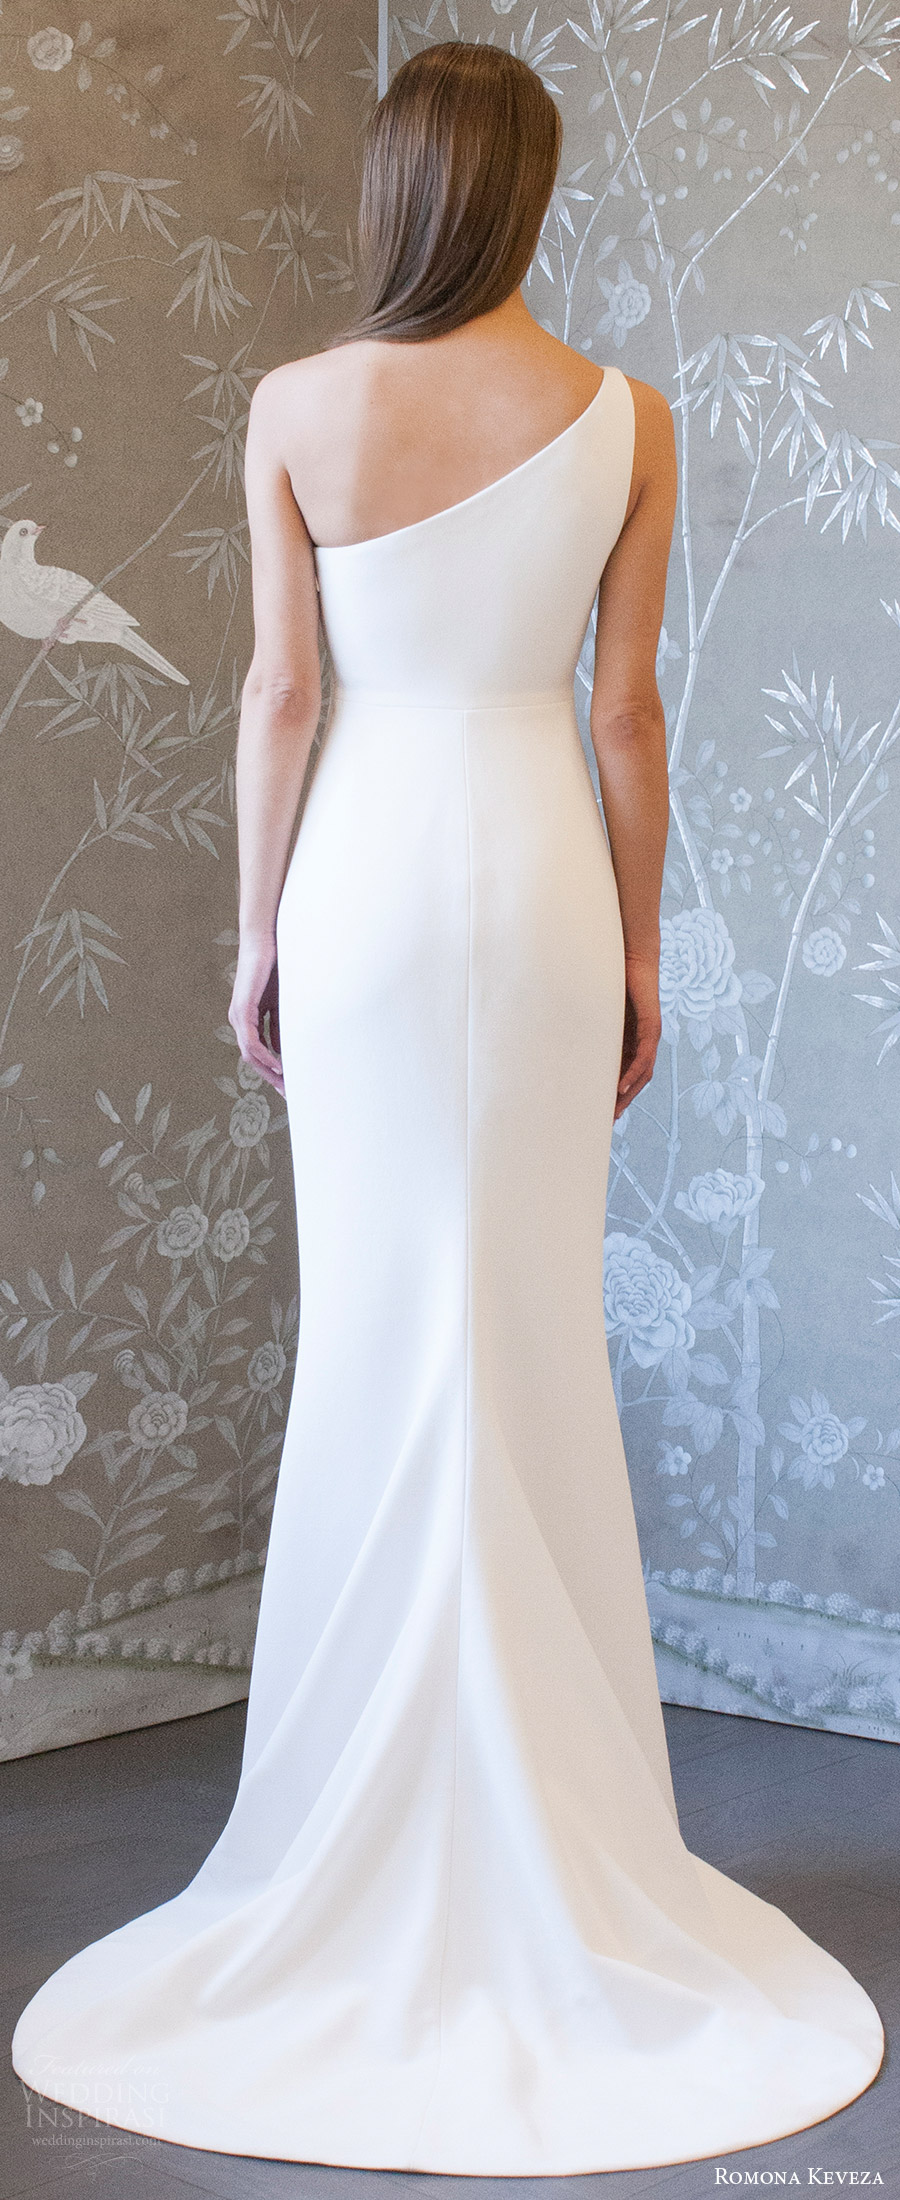 romona keveza spring 2018 bridal one shoulder unembellished sheath wedding dress (rk8401) bv clean modern